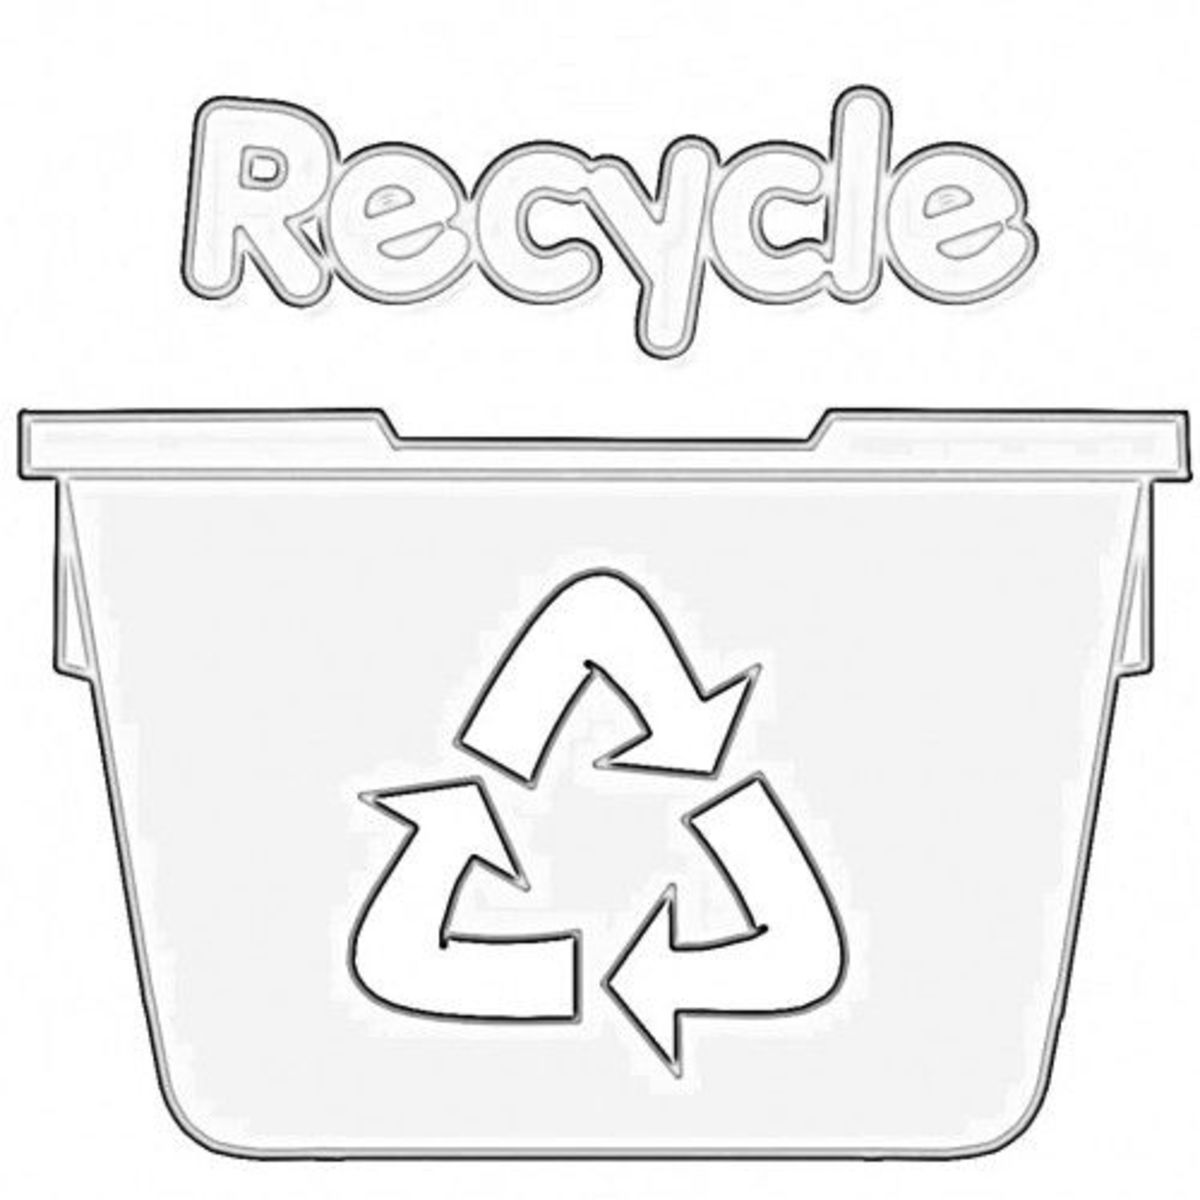 Worksheets Recycling For Kids Worksheets recycling worksheets for kids recycle bin coloring page